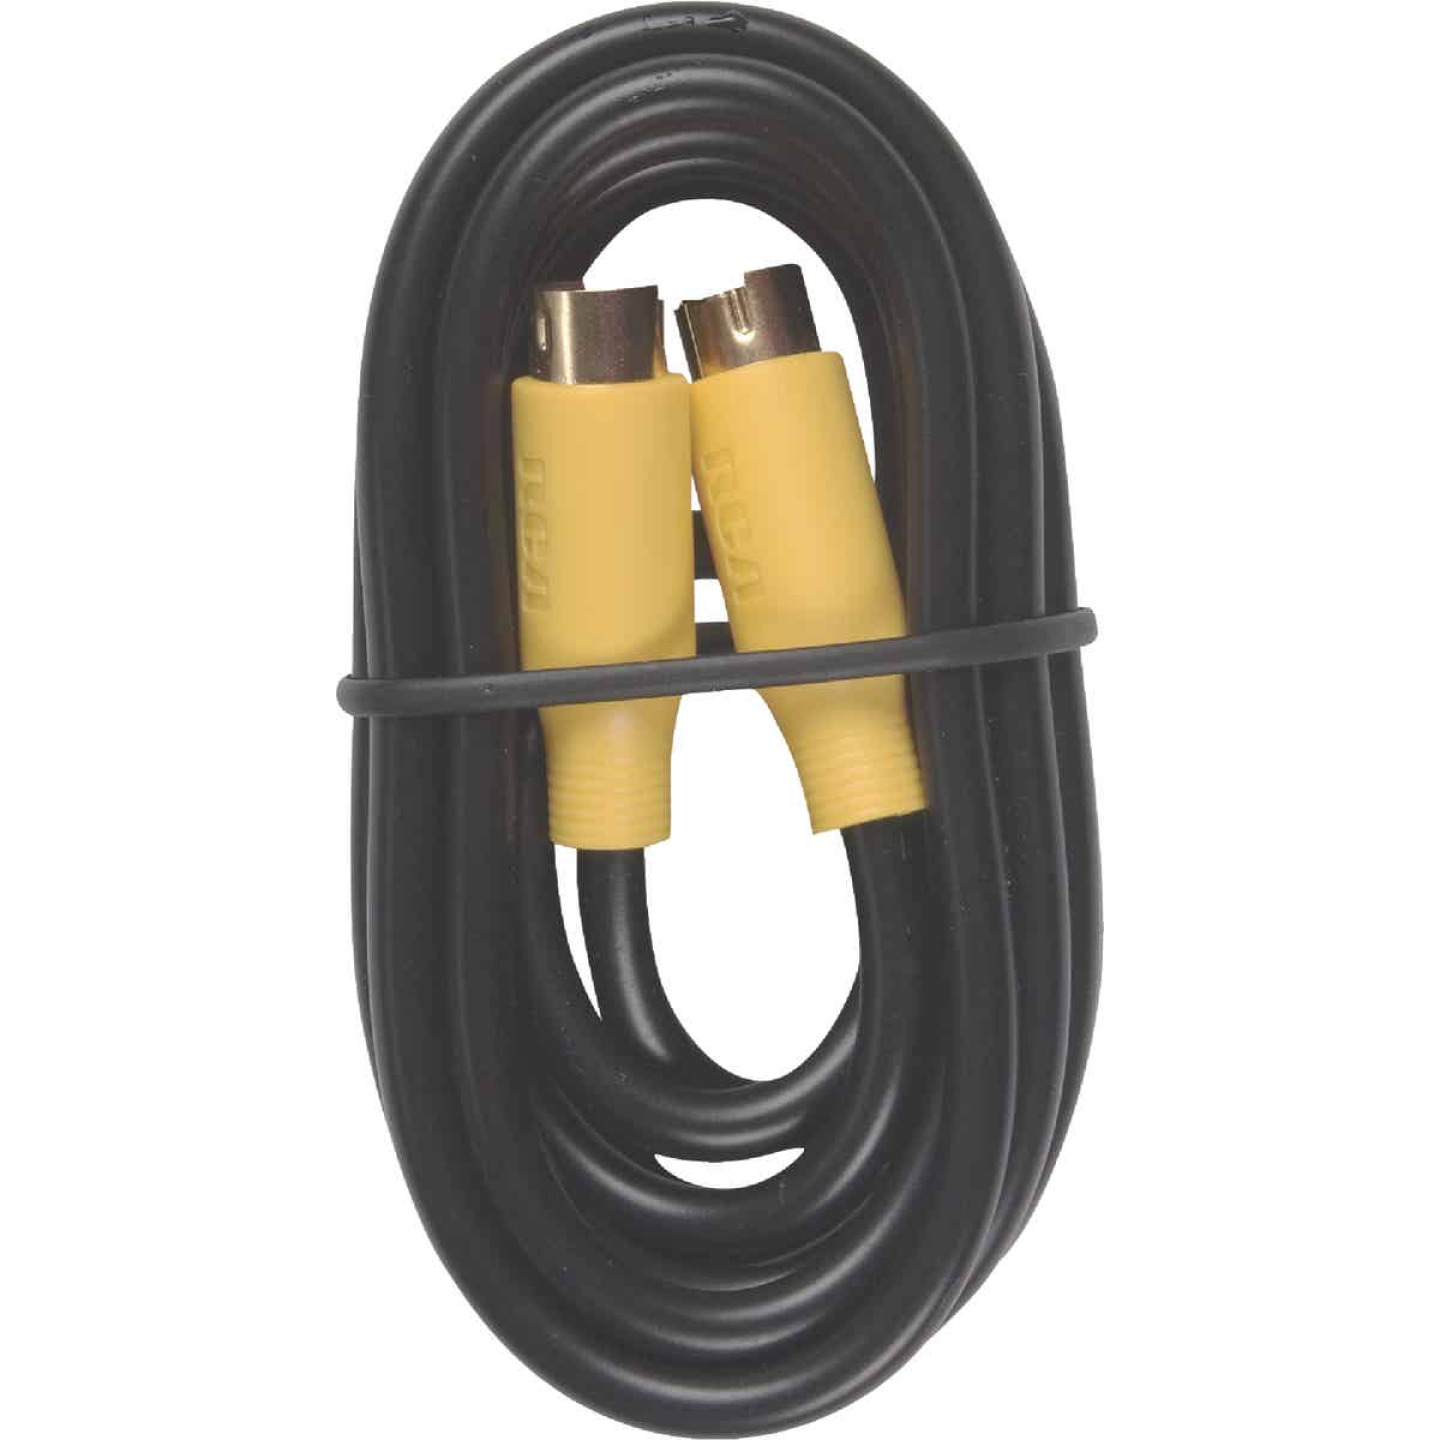 RCA 6 Ft. S-Video Cable Image 3